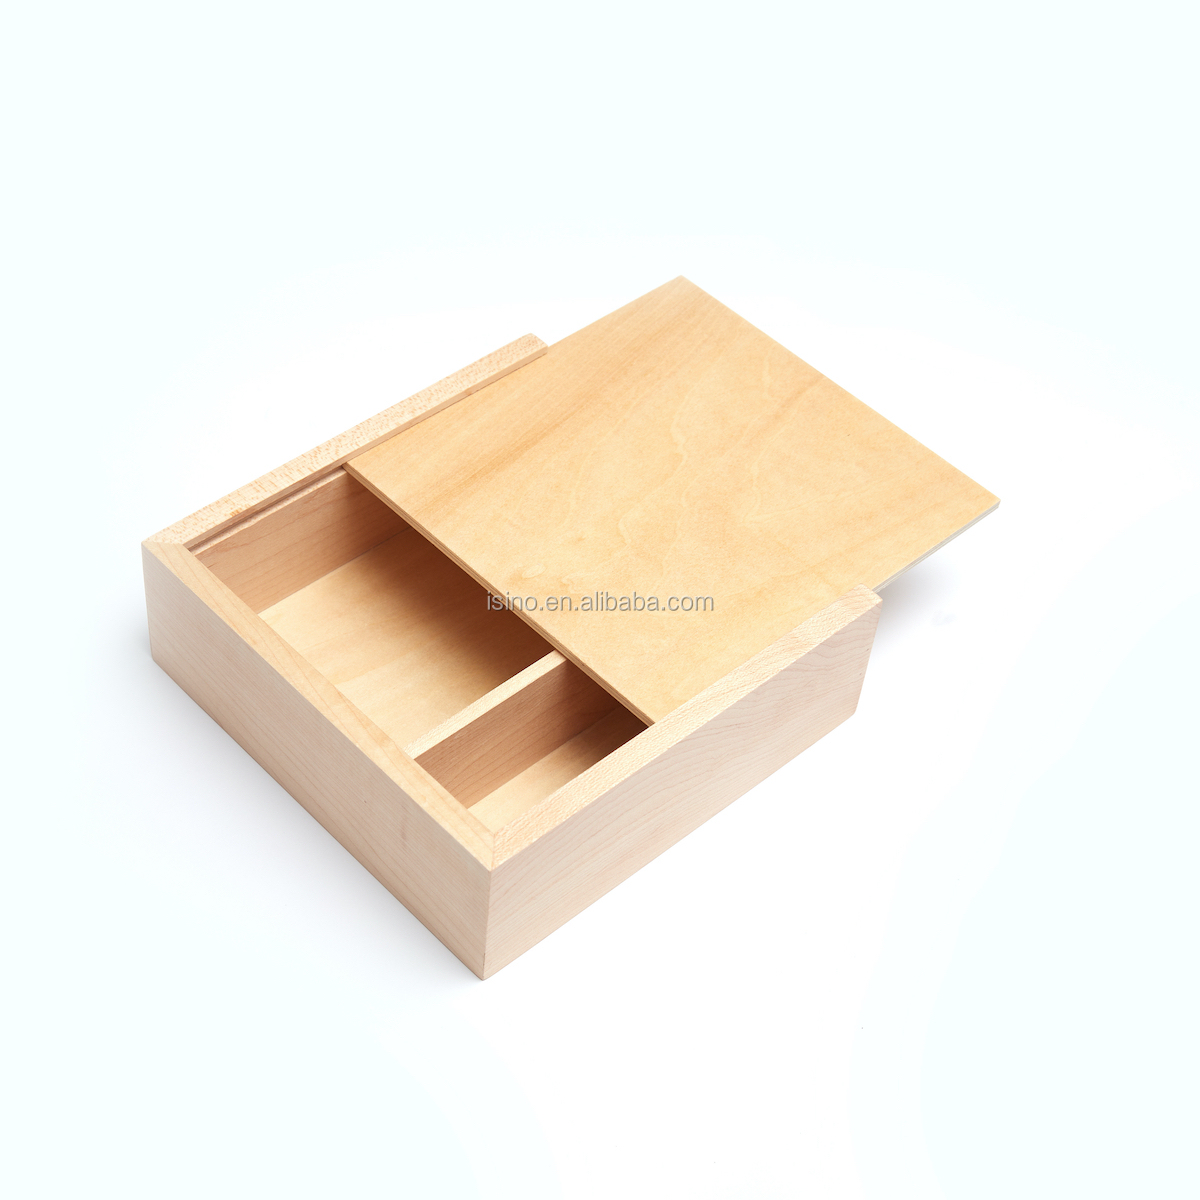 Wholesale Wood Gift Box Packaging Keepsake Wooden Boxes for Wedding Birthday Occasions, Store Pictures and USB Memory